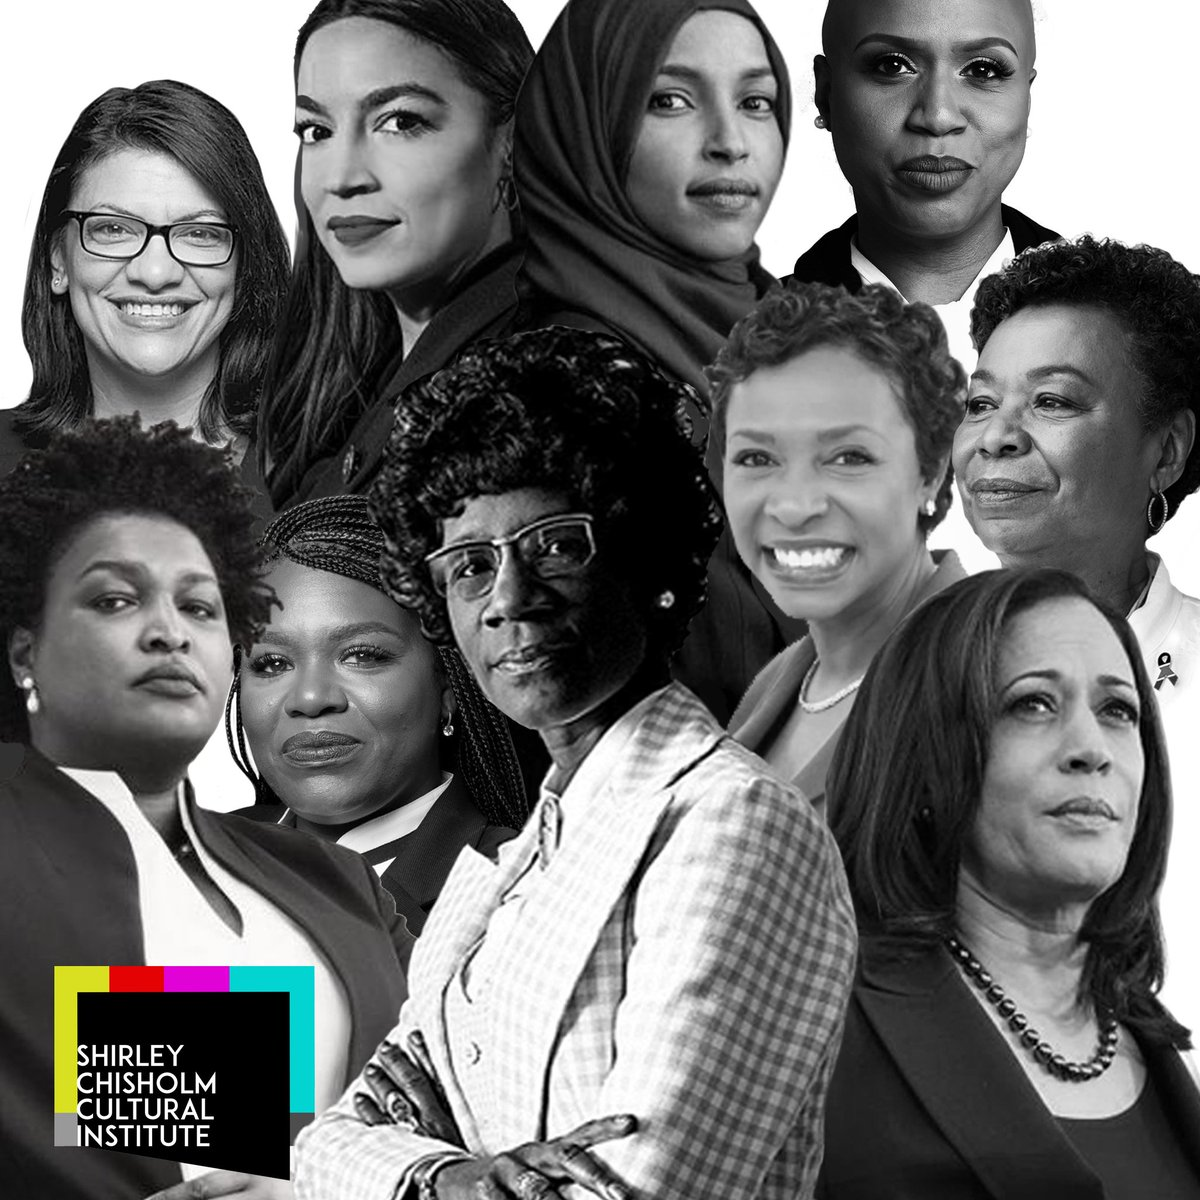 Everyday is #womenhistorymonth #blackwomenlead #blacklivesmatter #blackwomeninpolitics #blackgirlmagic #womeninpolitics @VP @RepBarbaraLee @RepYvetteClarke @staceyabrams @RepAOC @RepPressley @CoriBush @Ilhan @RepRashida #ShirleyChisholm design by @producestories